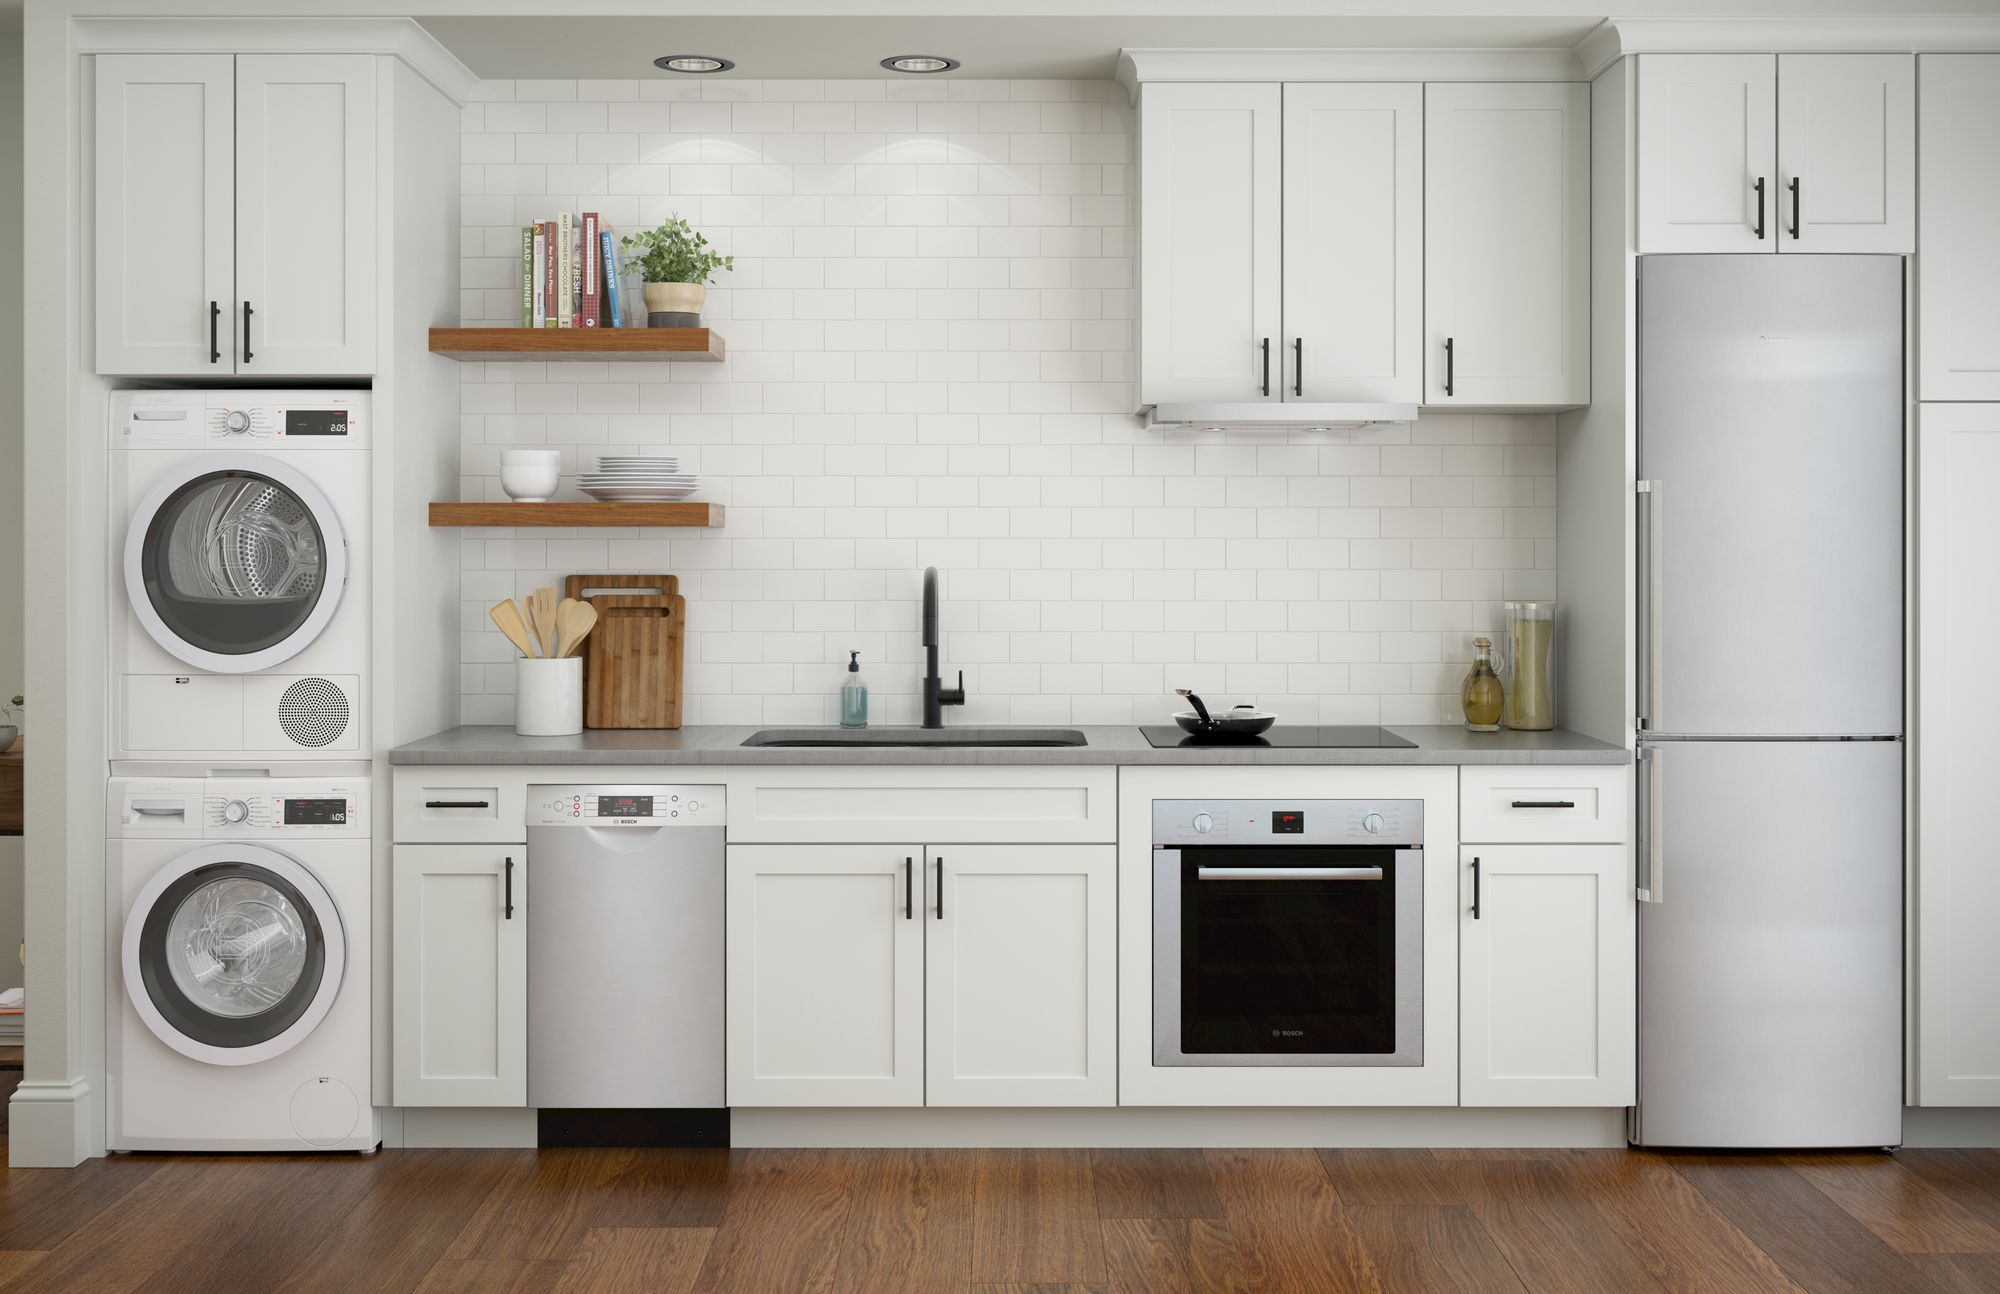 view of kitchen with small appliances